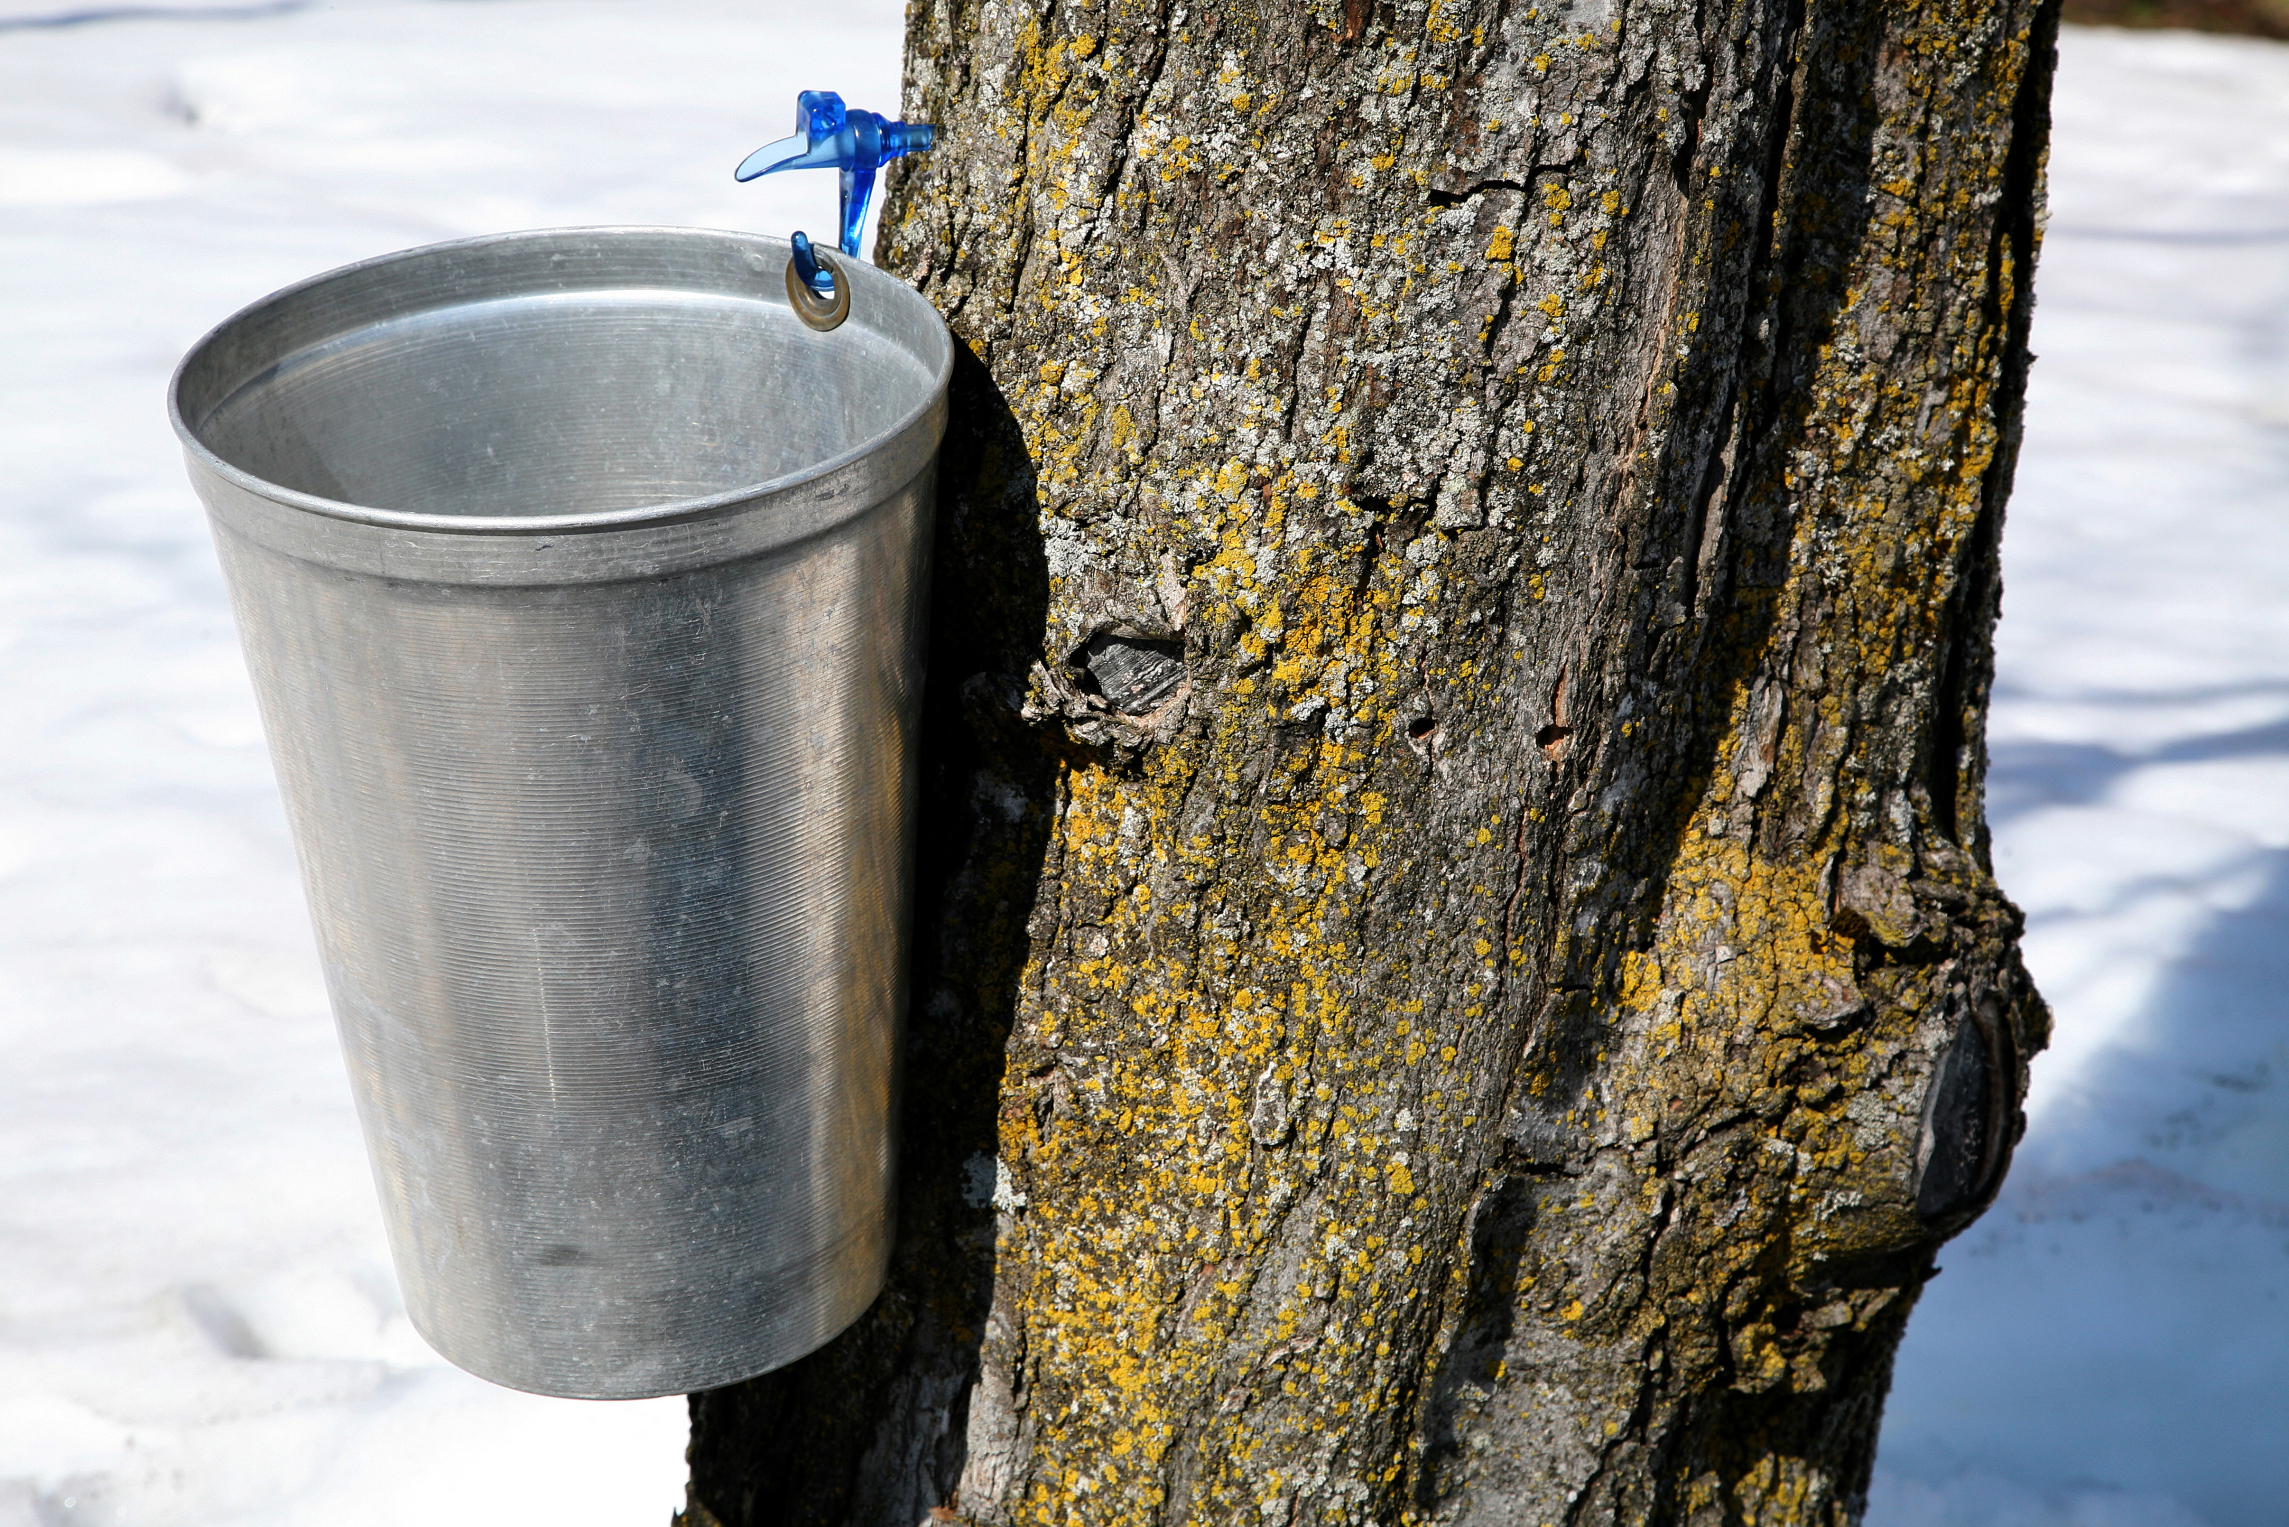 Homemade Maple Syrup Taps Sciencing